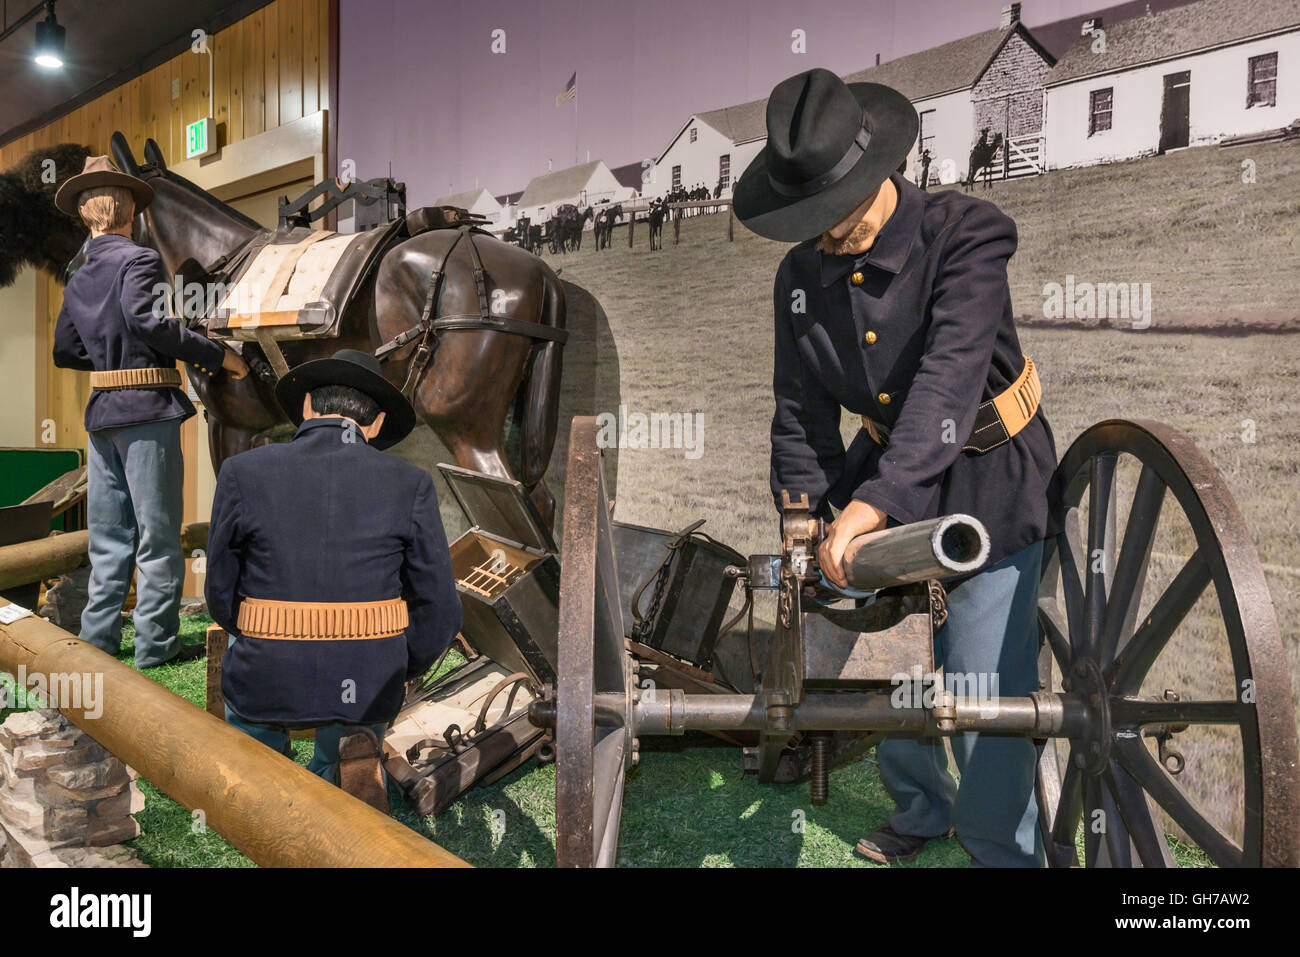 Soldiers With Hotchkiss Light Mountain Gun Diorama At Museum In - Gun museums in usa